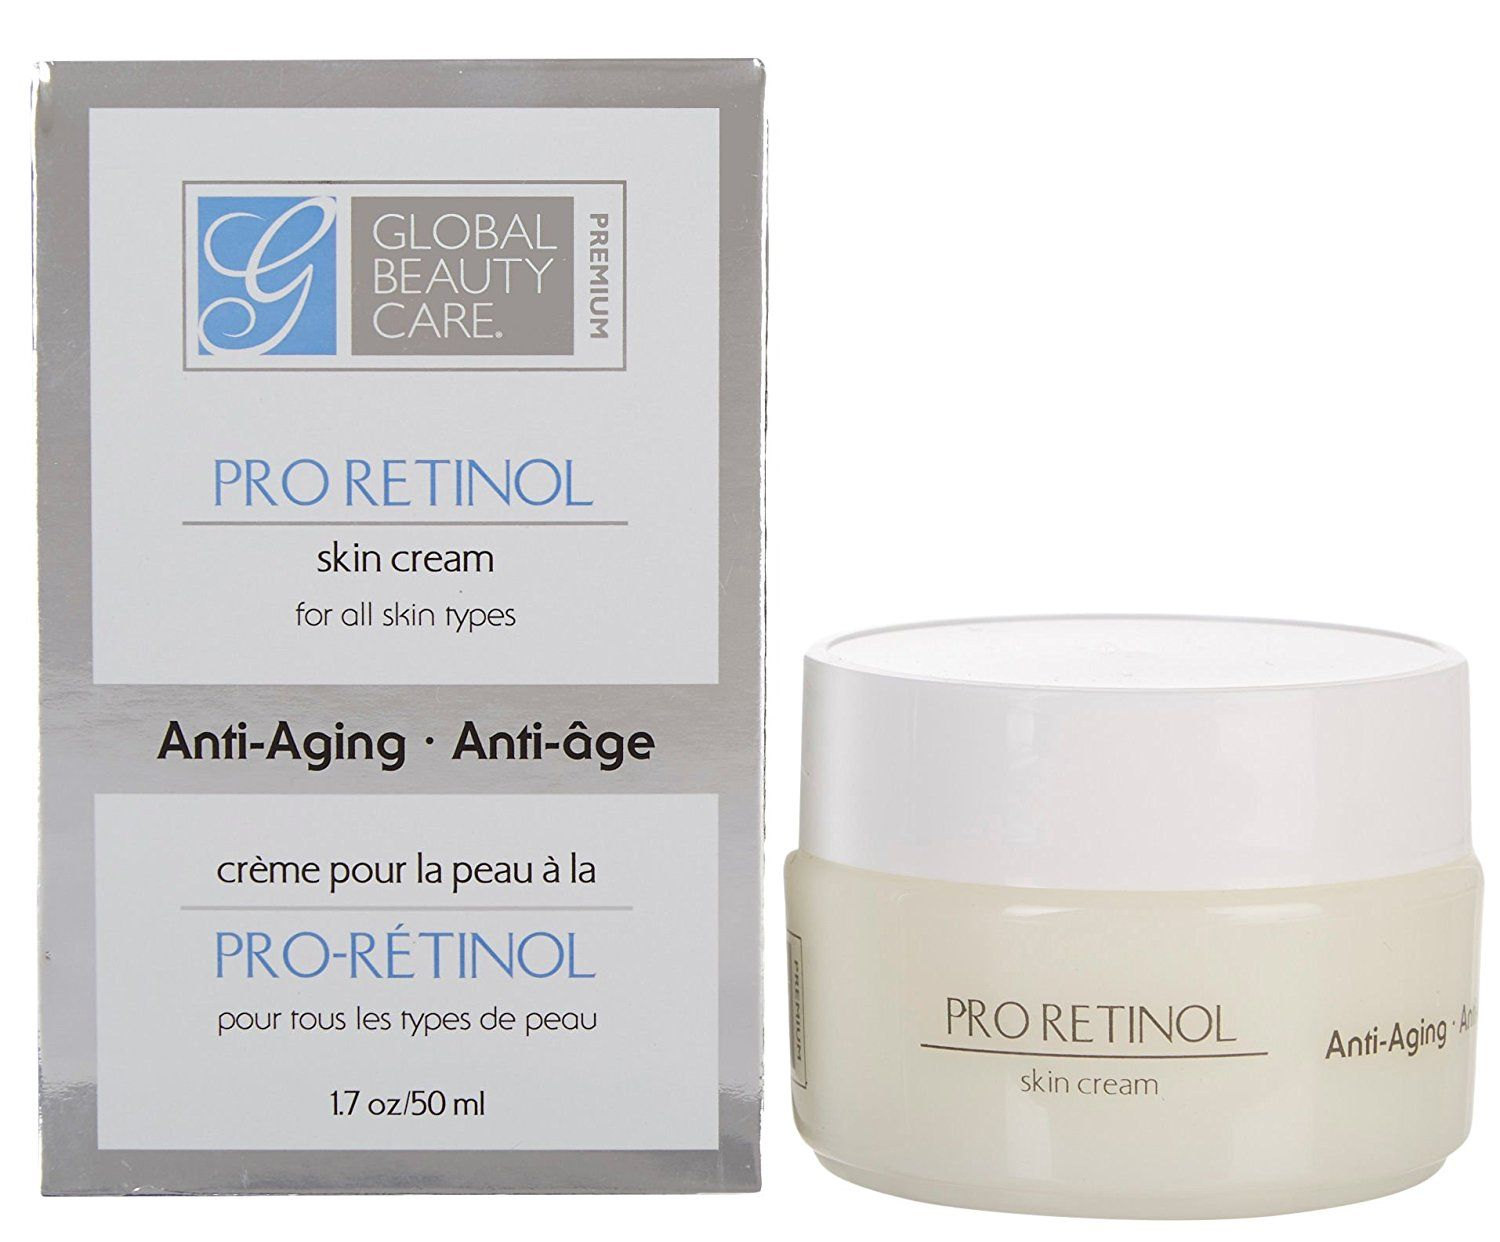 Global Beauty Care Pro Retinal Skin Cream Anti Aging 1 7 Ounce This Is An Amazon Affili Skin Cream Anti Aging Anti Aging Skin Products Skin Cream